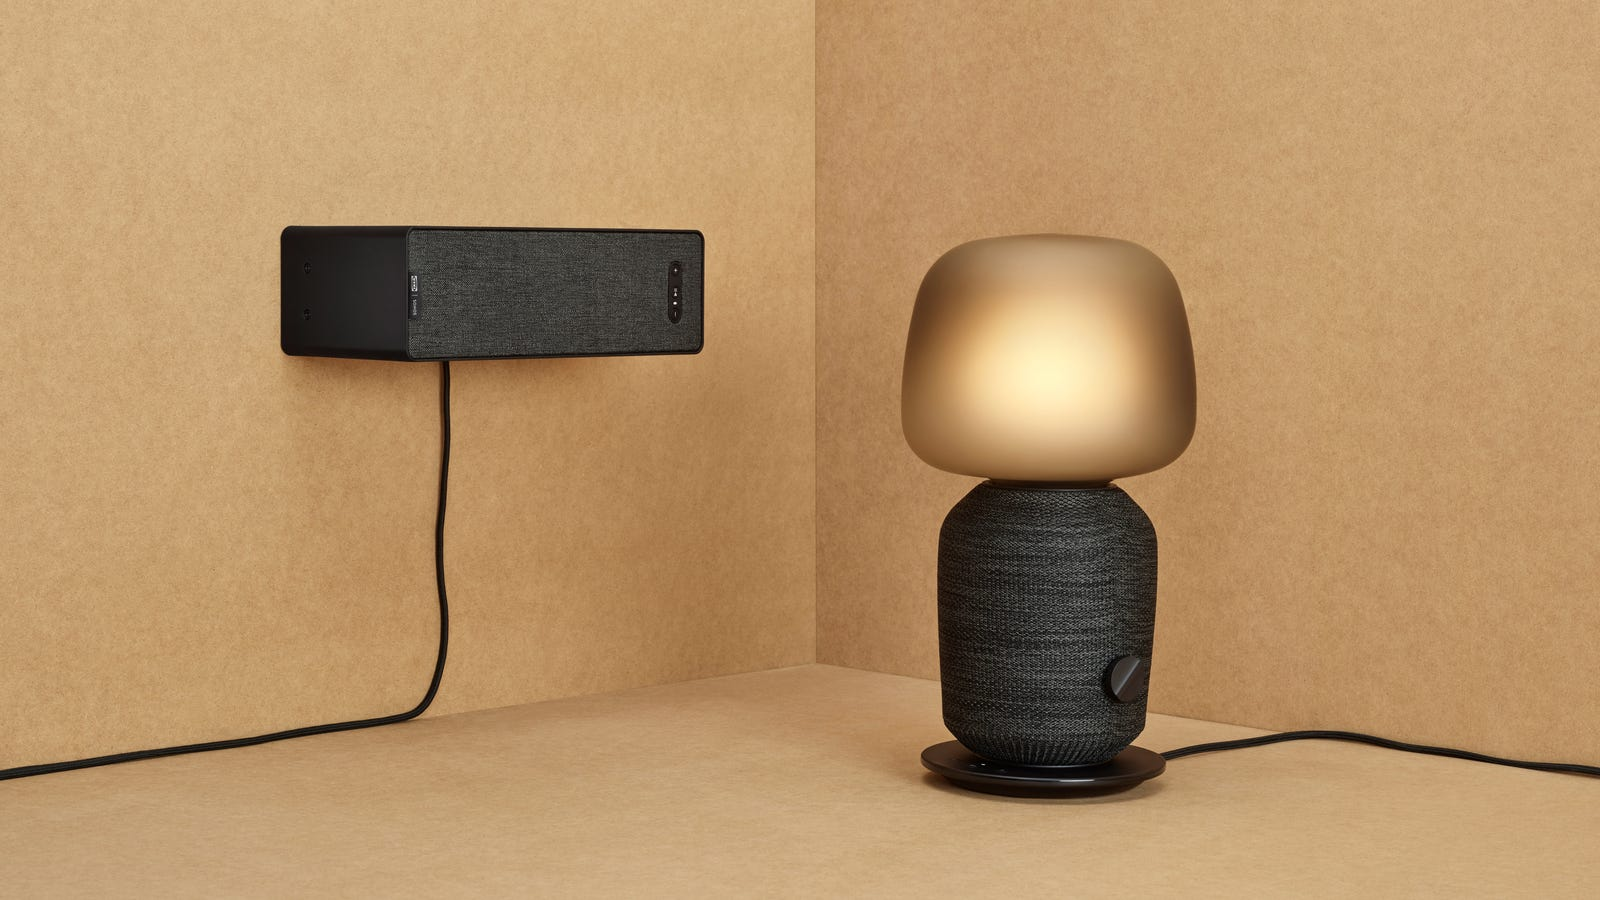 Sonos and Ikea Made Some Wacky Speaker Furniture